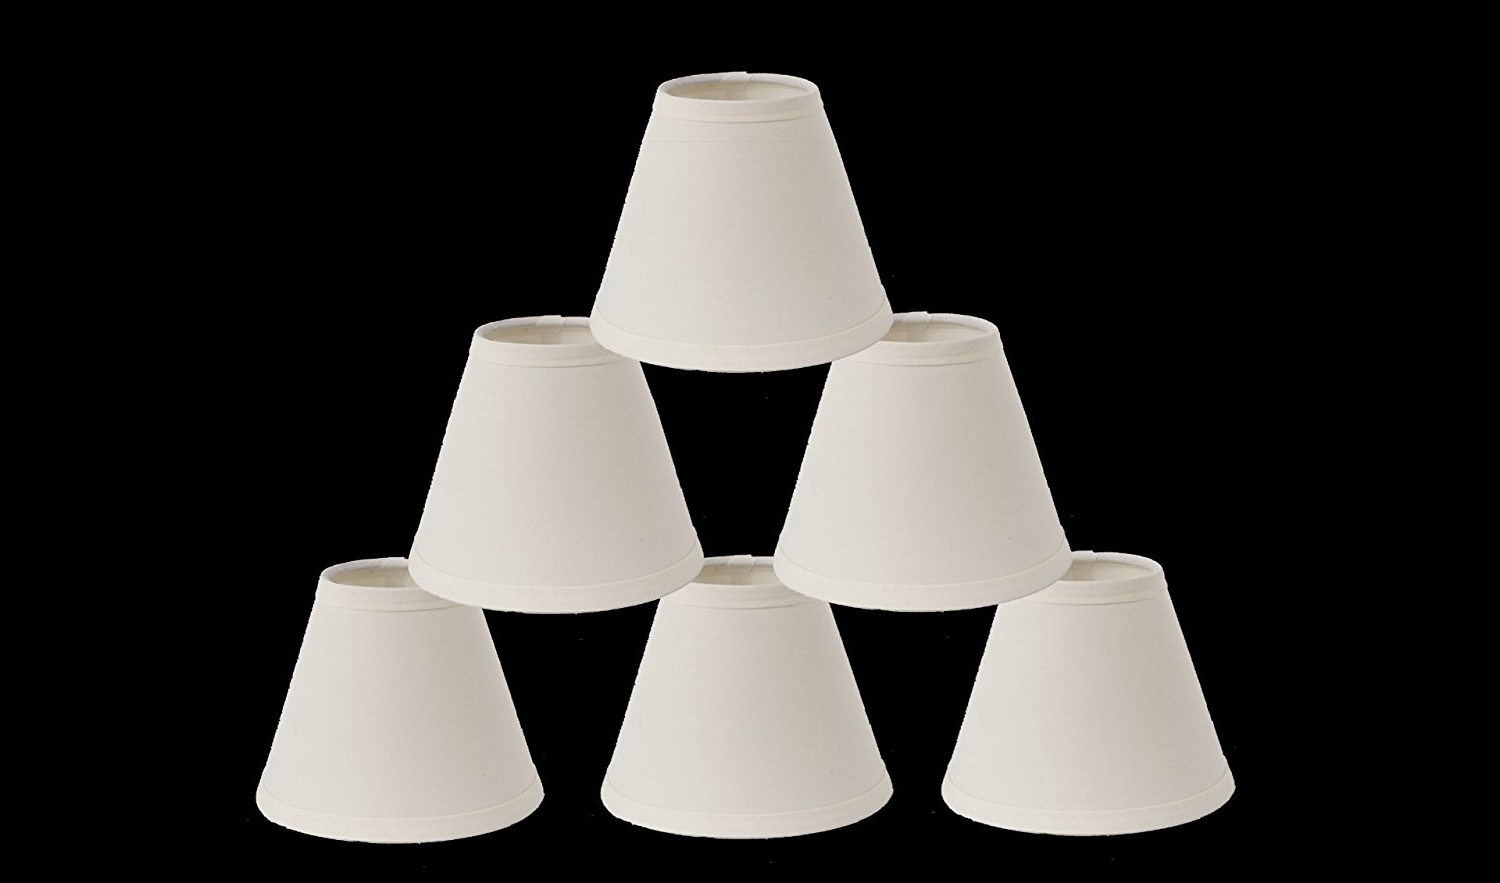 Small Chandelier Lamp Shades Regarding Popular Urbanest 1100327C Mini Chandelier Lamp Shades 6 Inch, Cotton (View 15 of 15)